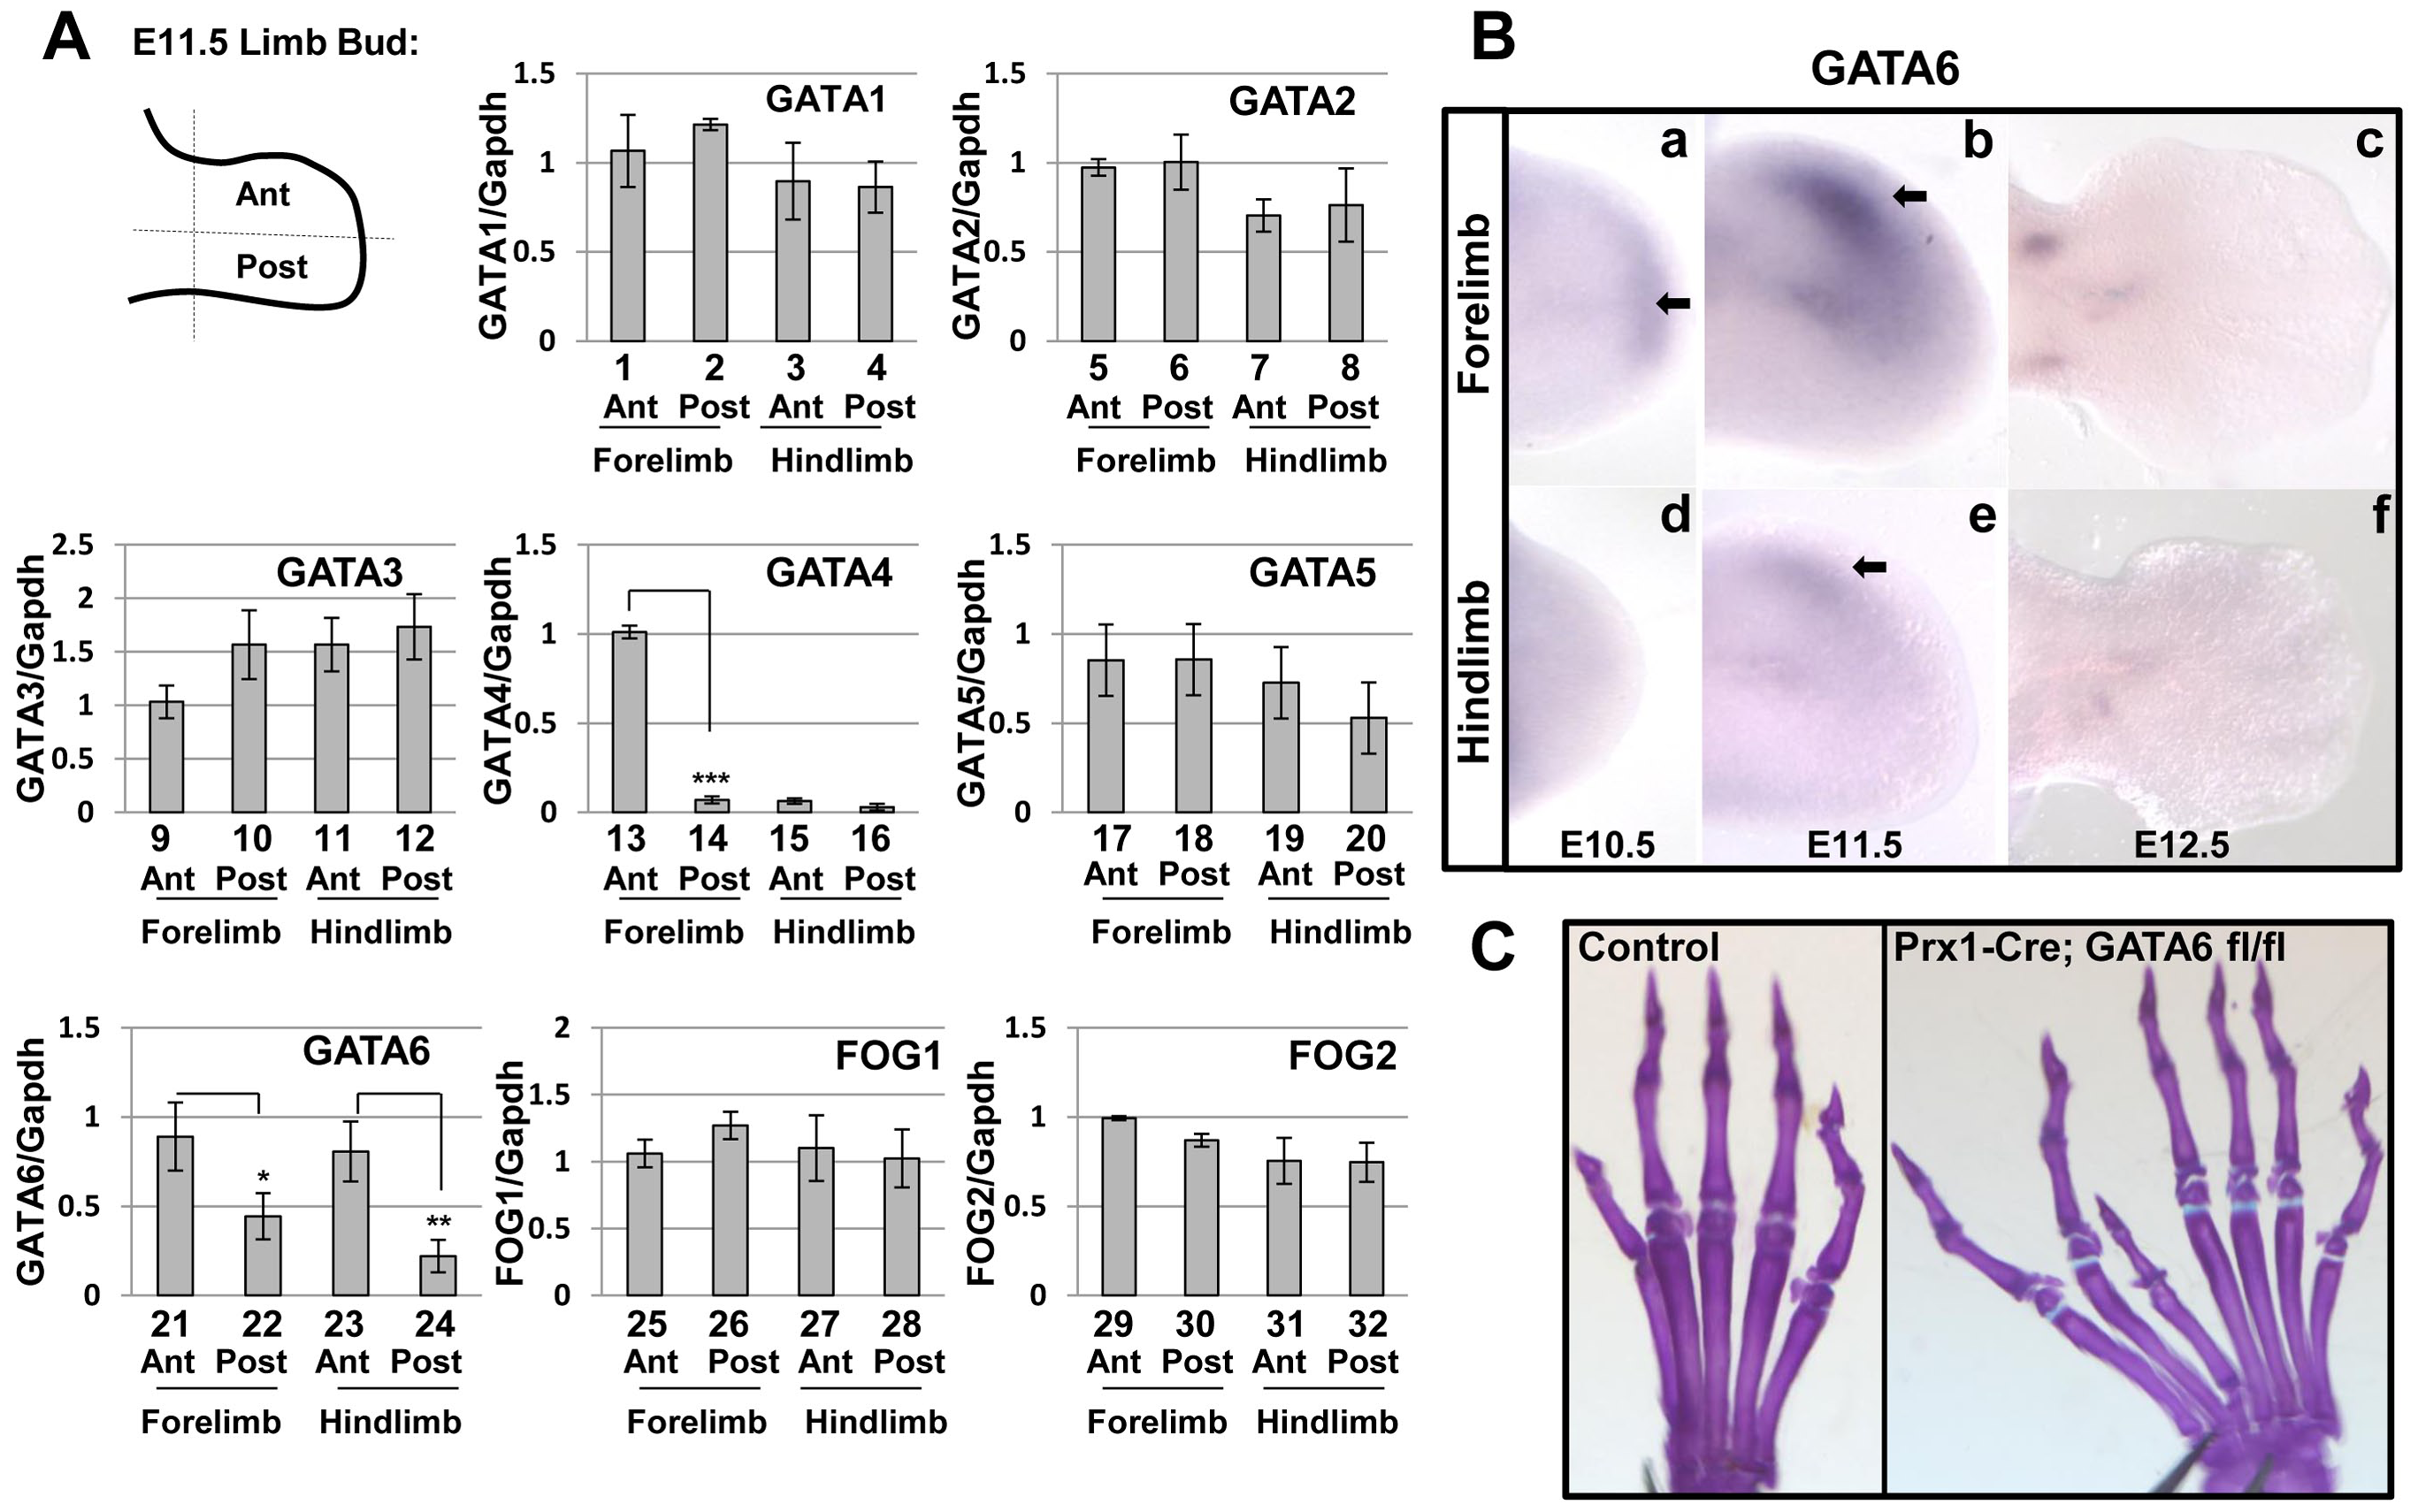 GATA and FOG factors are expressed in the limb bud mesenchyme, loss of GATA6 from limb bud mesenchyme results in hindlimb preaxial polydactyly.